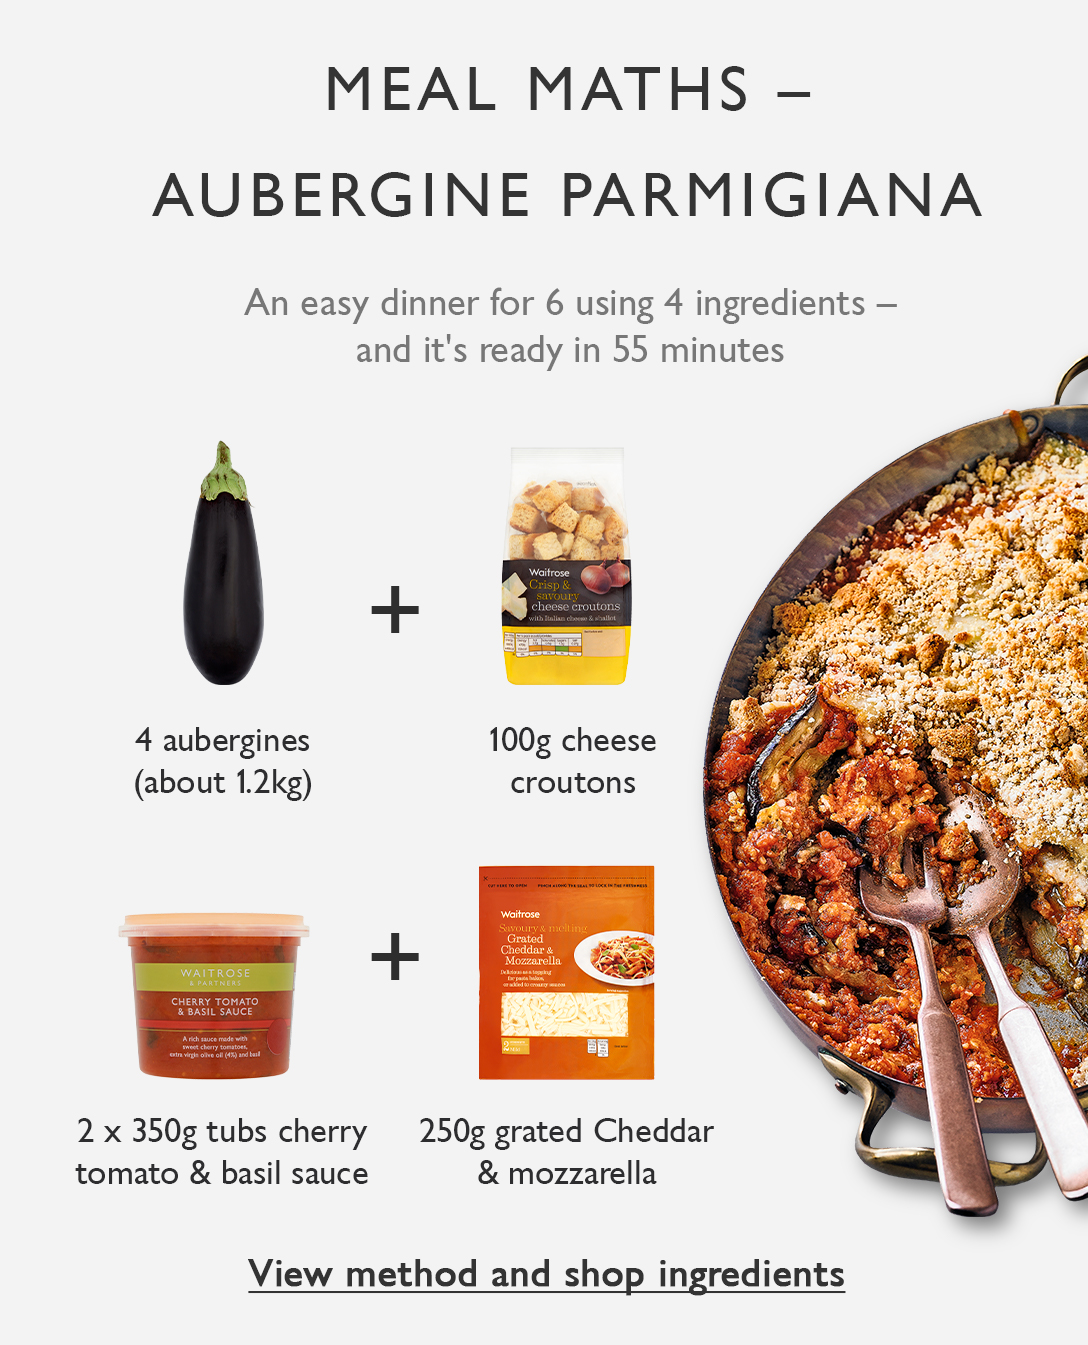 Meal maths - Aubergine parmigiana